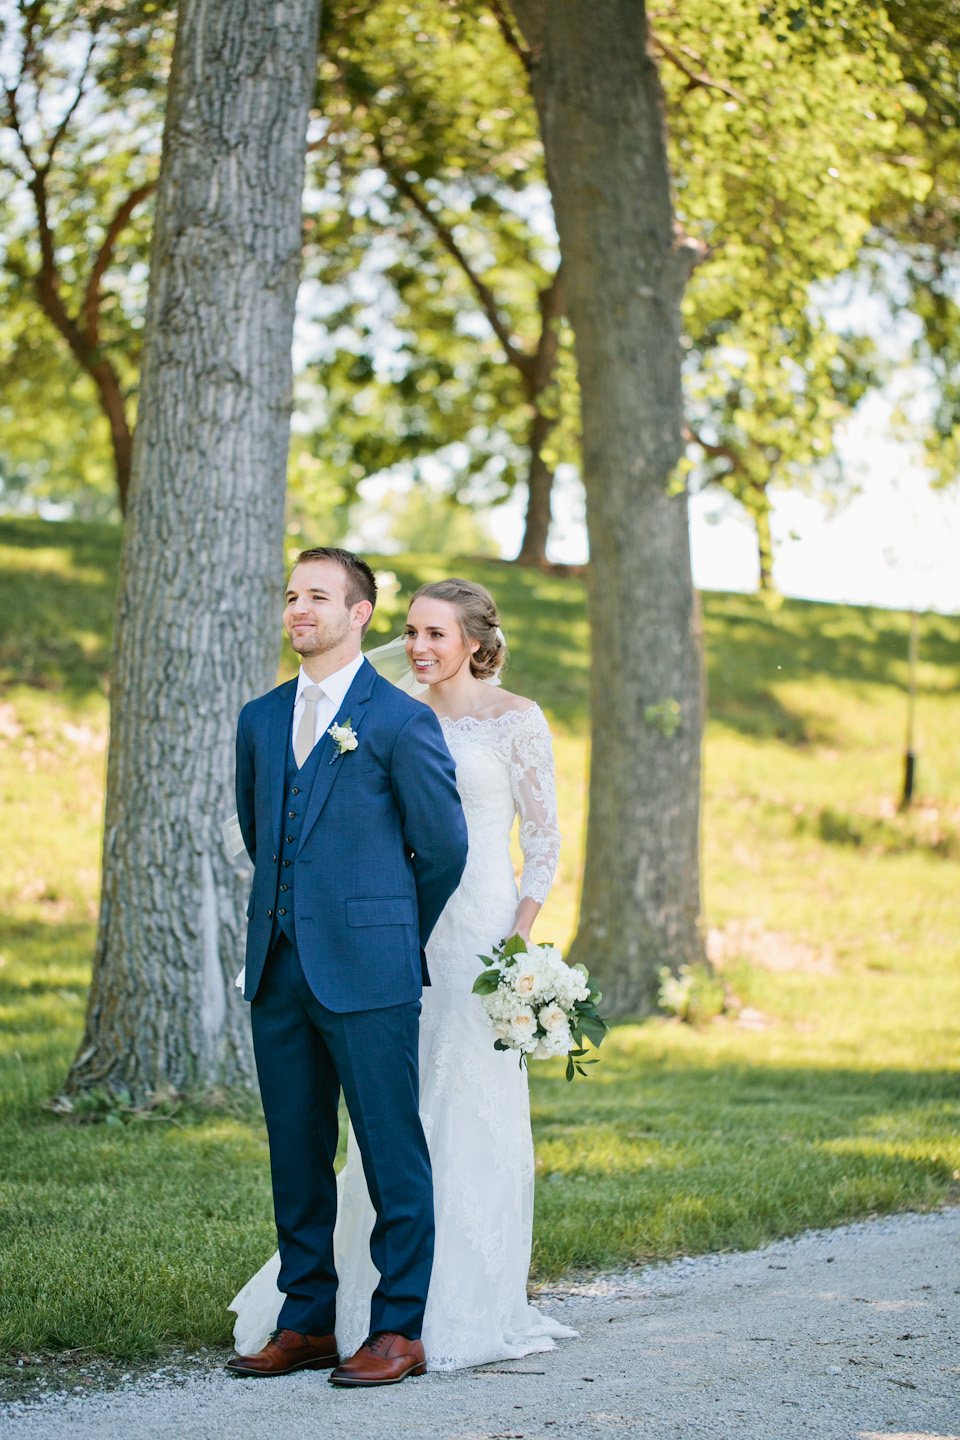 Omaha wedding videographers and photographers